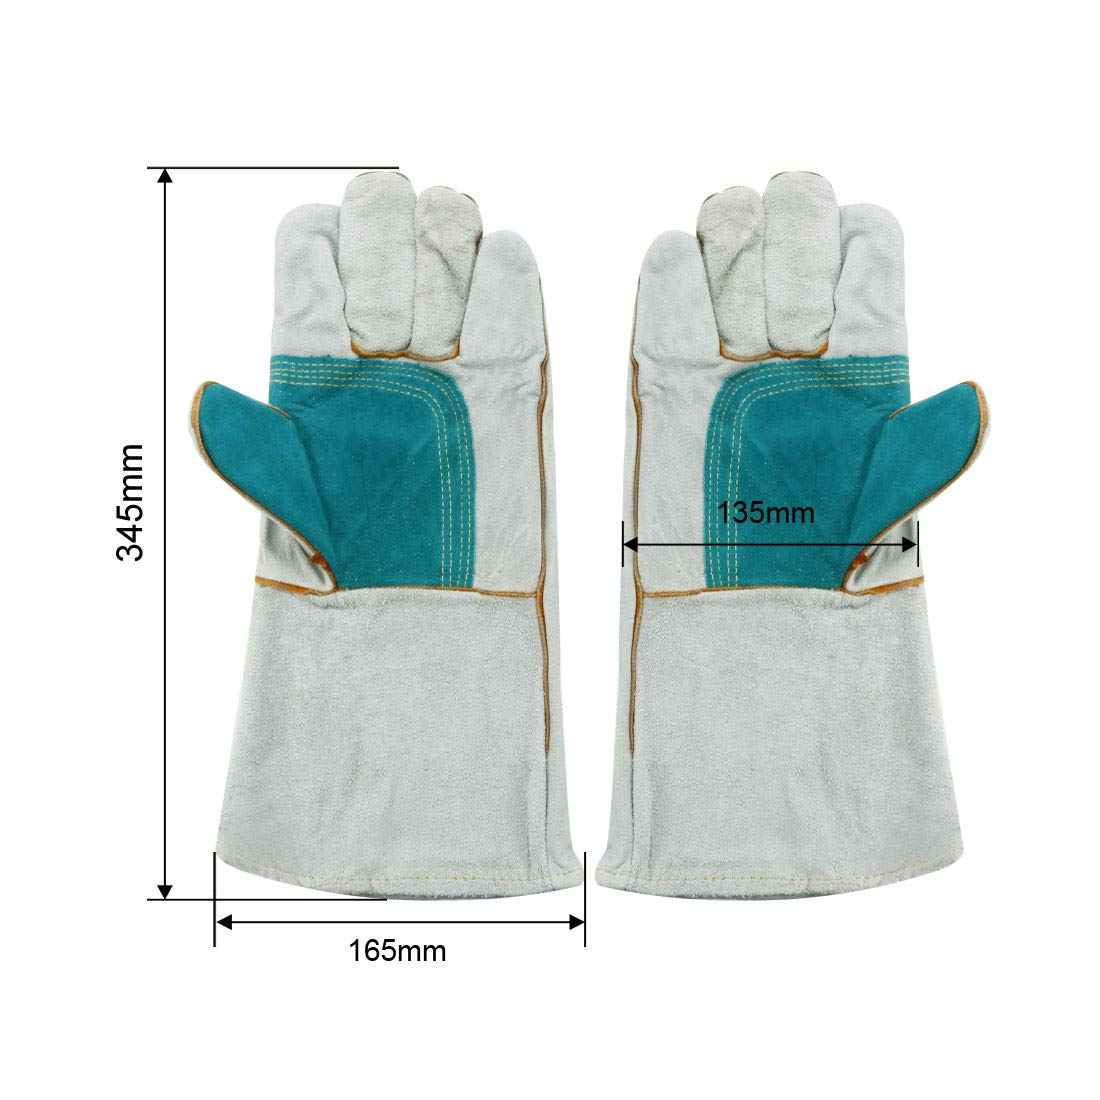 uxcell Cowhide Leather Work Gloves 330x135mm Gray for Welding Process Protection 1 Pair